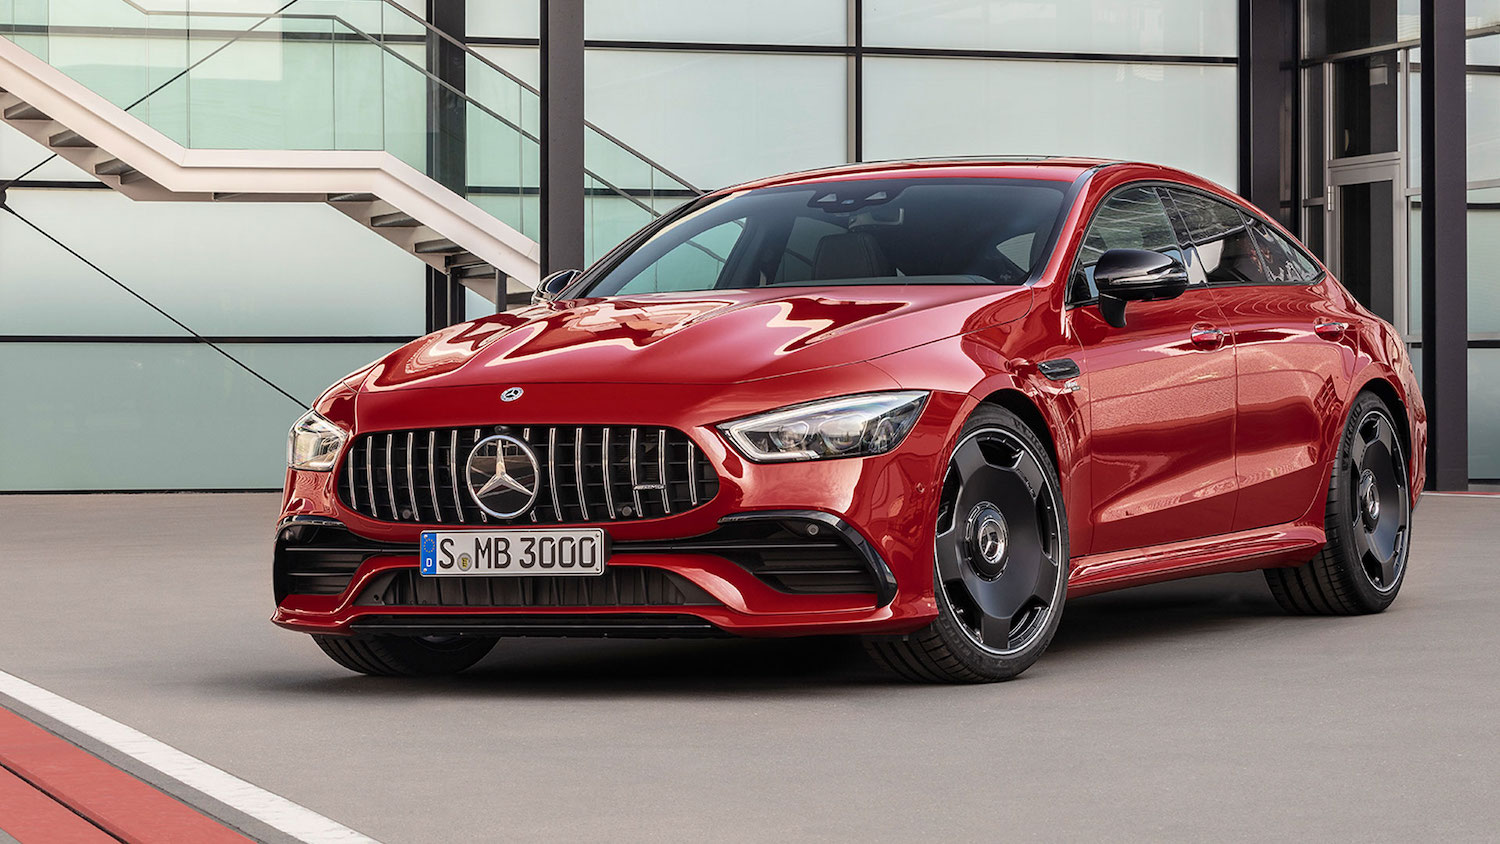 2018 mercedes amg gt 4-door coupe